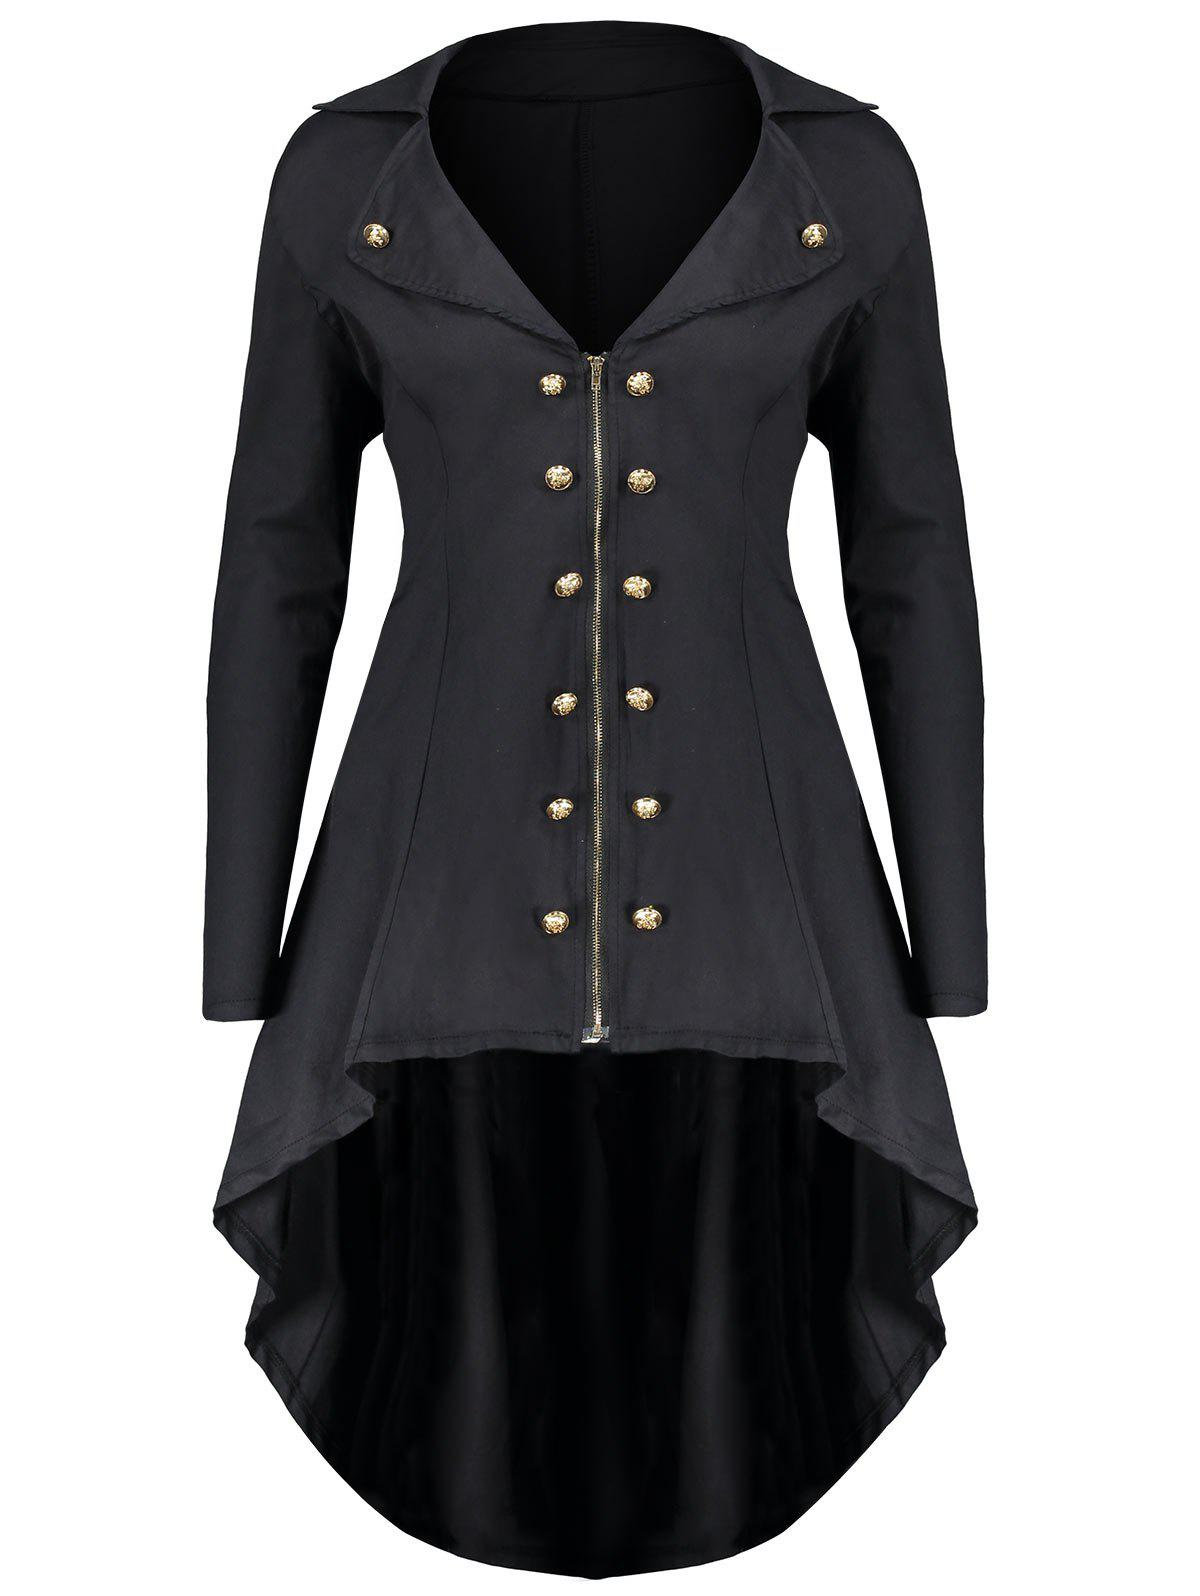 Lapel Double Breast Plus Size High Low CoatWOMEN<br><br>Size: 4XL; Color: BLACK; Clothes Type: Others; Material: Polyester,Spandex; Type: Asymmetric Length; Shirt Length: Long; Sleeve Length: Full; Collar: Lapel; Pattern Type: Solid; Embellishment: Button,Zippers; Style: Fashion; Season: Fall,Winter; Weight: 0.5200kg; Package Contents: 1 x Coat;